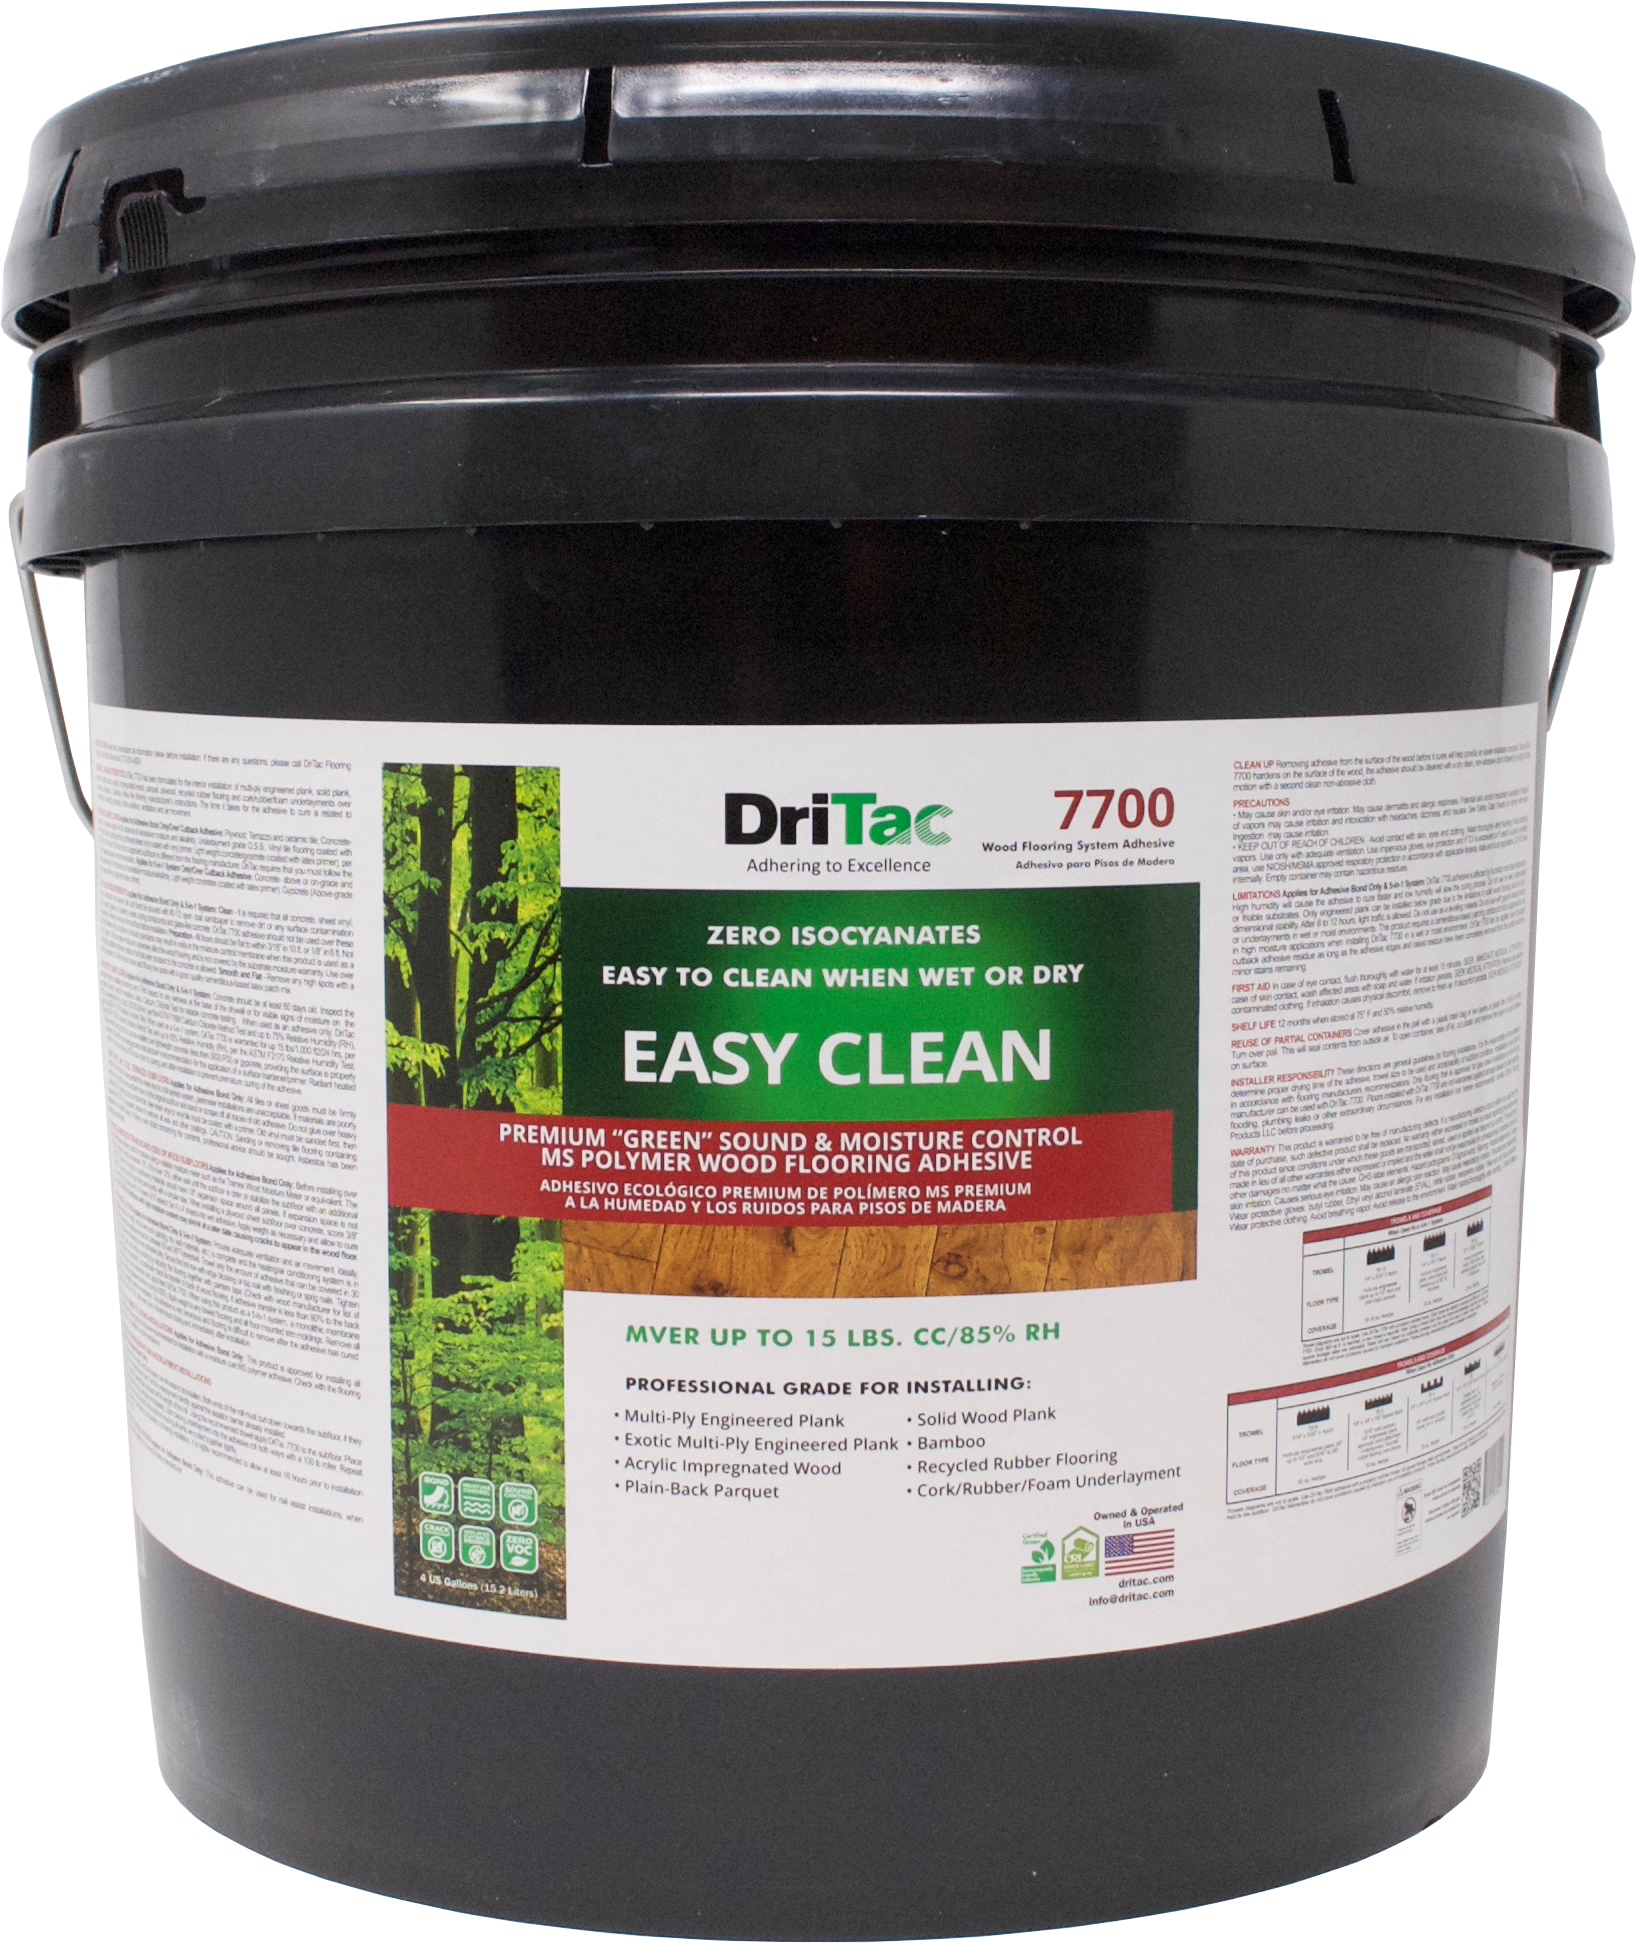 DriTac Easy Clean Sound & Moisture Control MS Polymer